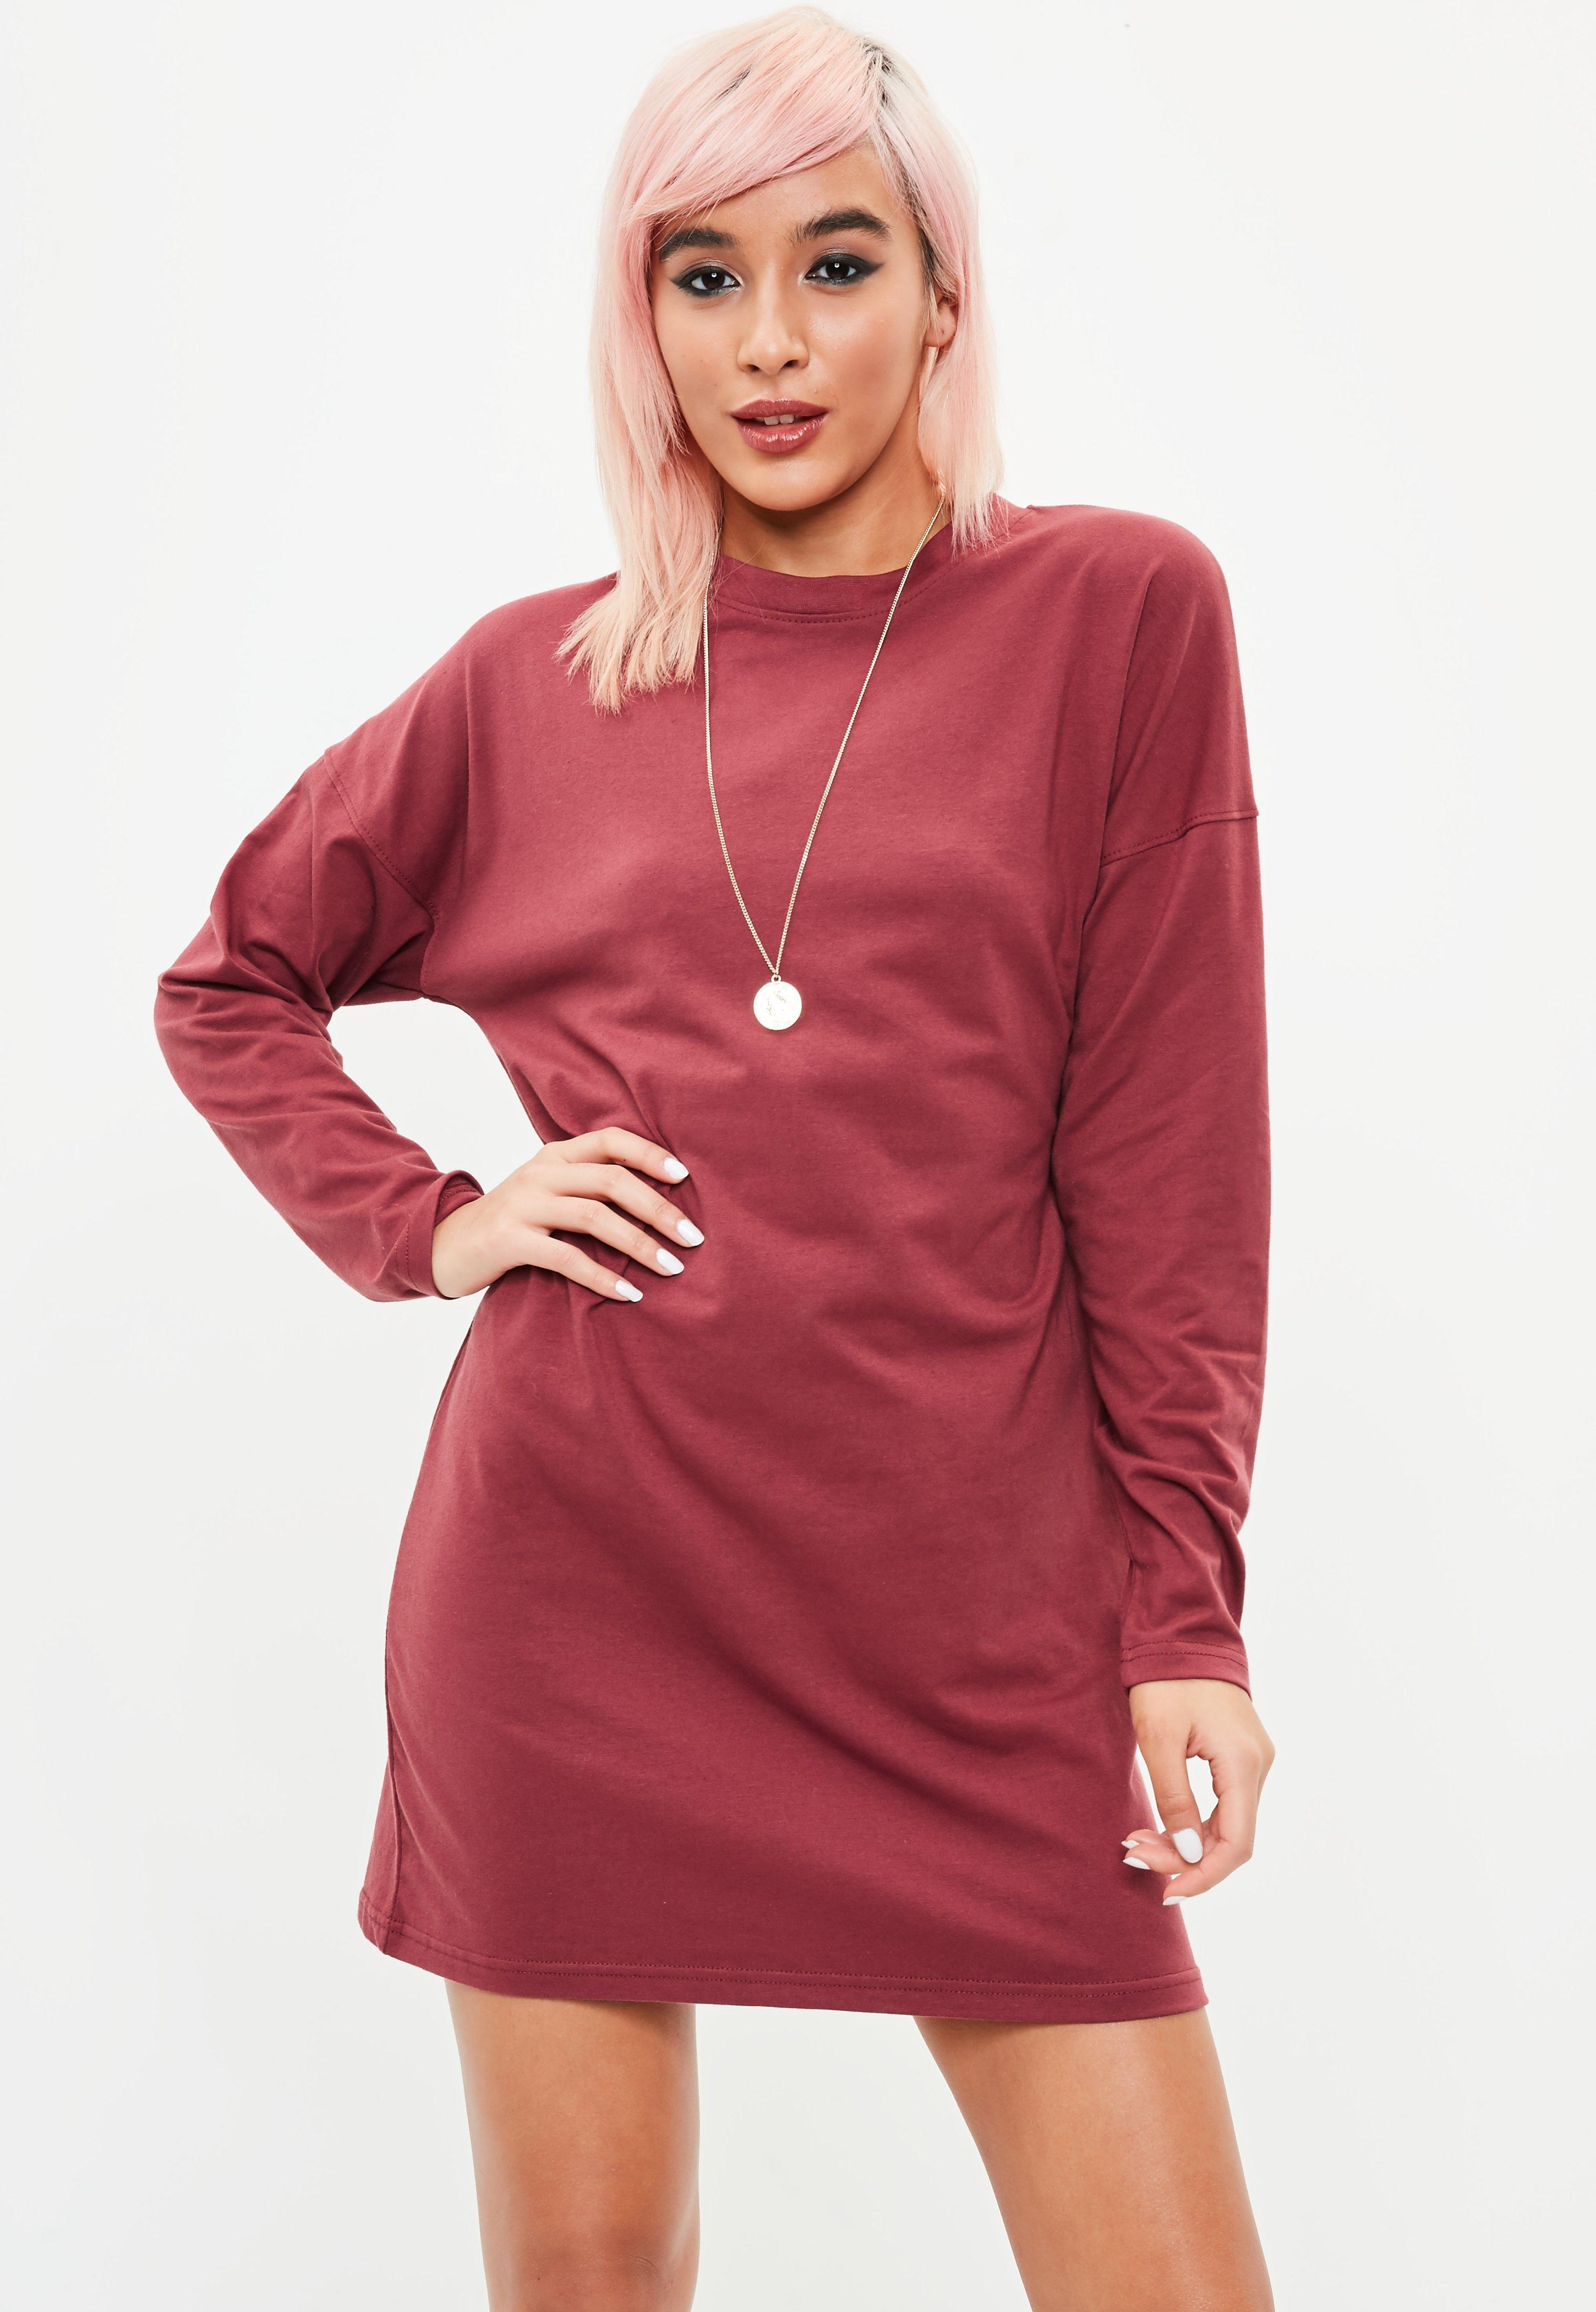 Lyst missguided burgundy long sleeved t shirt dress in red for Burgundy long sleeve t shirt womens